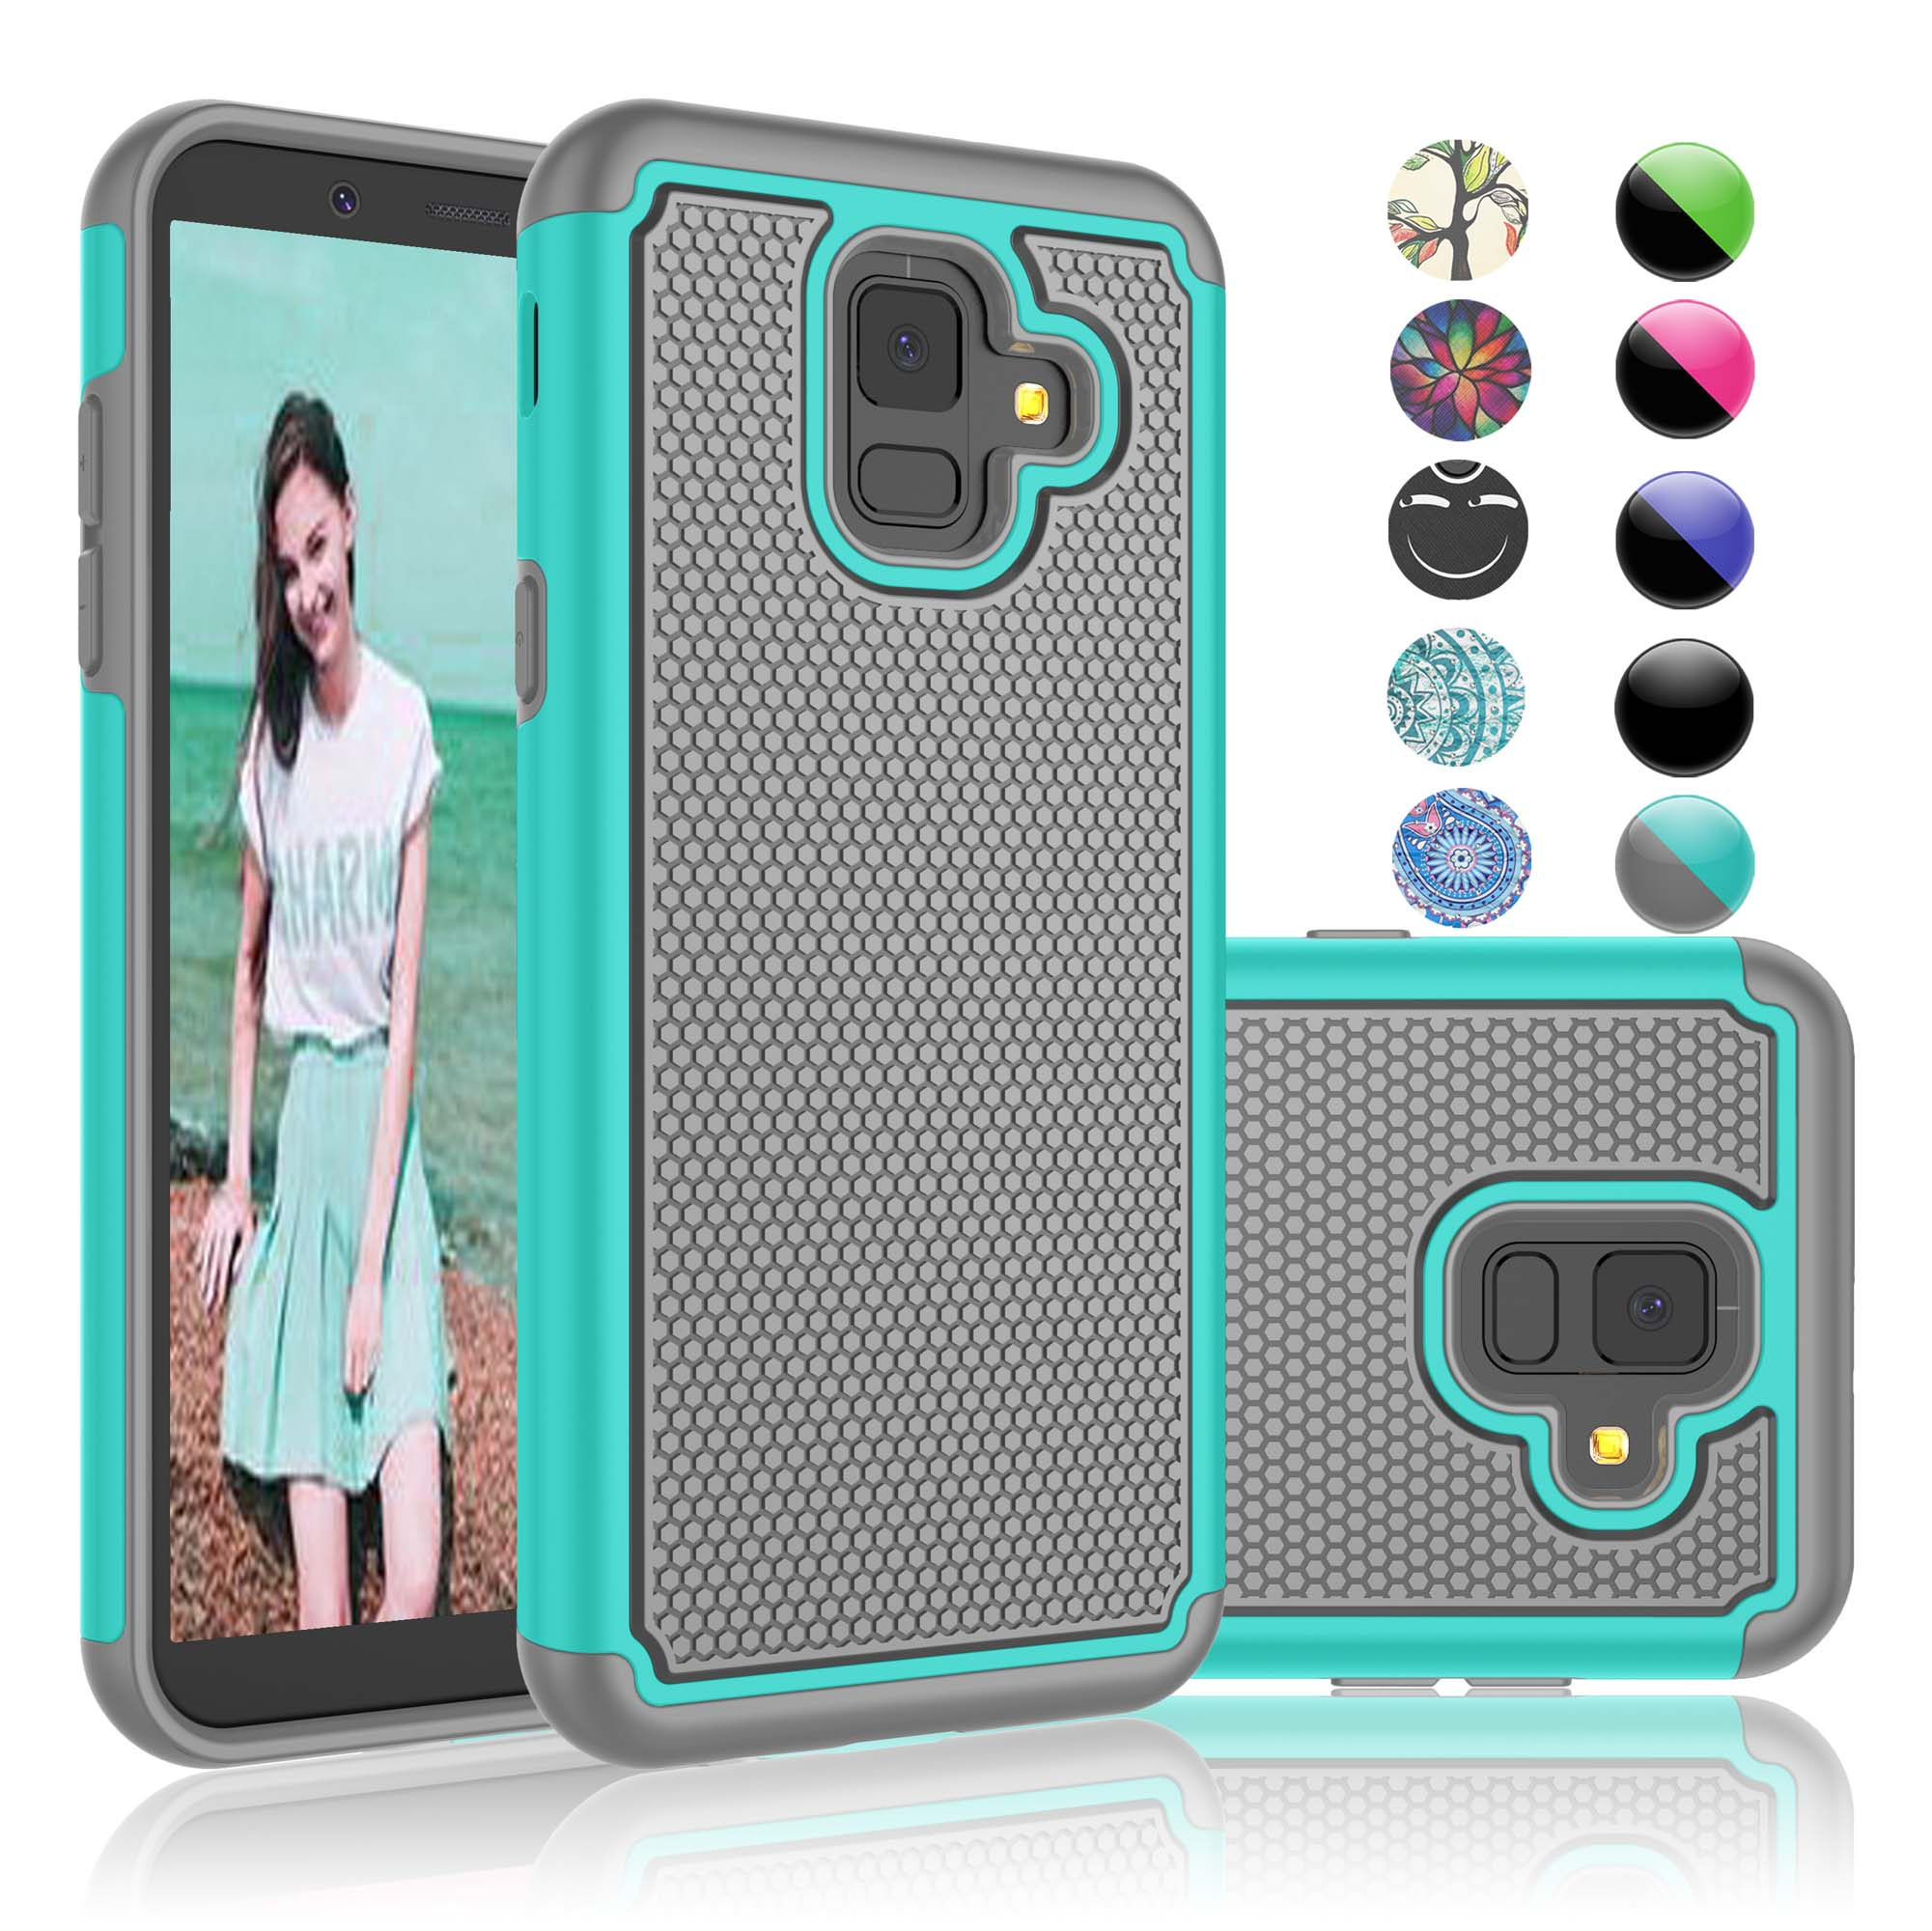 new concept d48f4 295fa Galaxy A6 Case, Samsung A6 Cover, Sturdy Case For Samsung Galaxy A6 2018,  Njjex Shock Absorbing Dual Layer Silicone & Plastic Bumper Rugged Grip Hard  ...